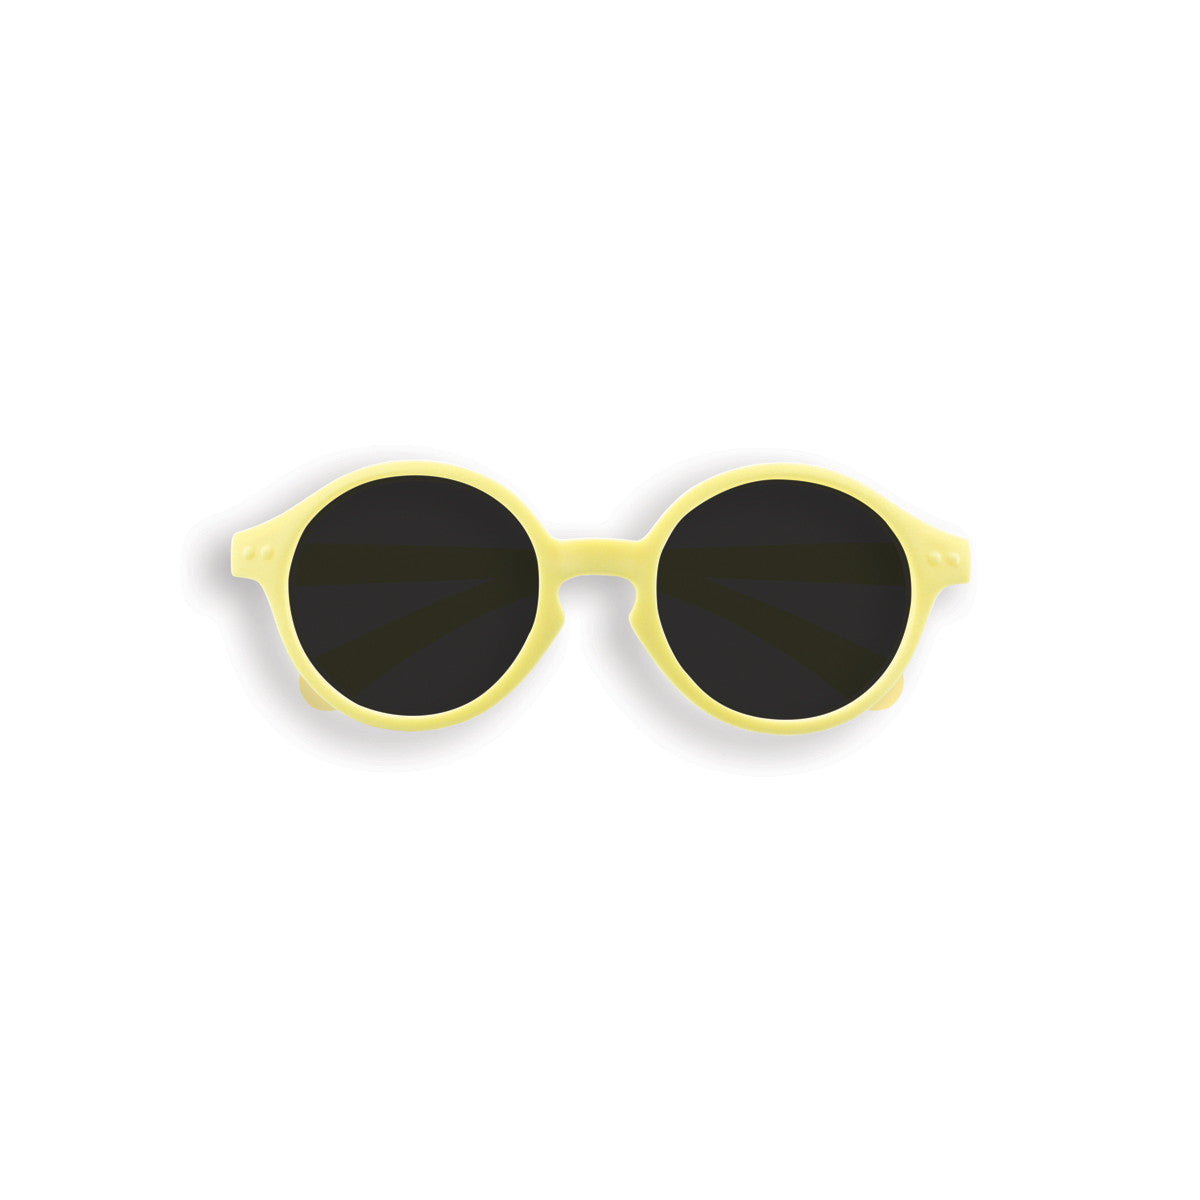 SUN KIDS BABY SUNGLASSES / 12-36 MONTHS / LEMONADE